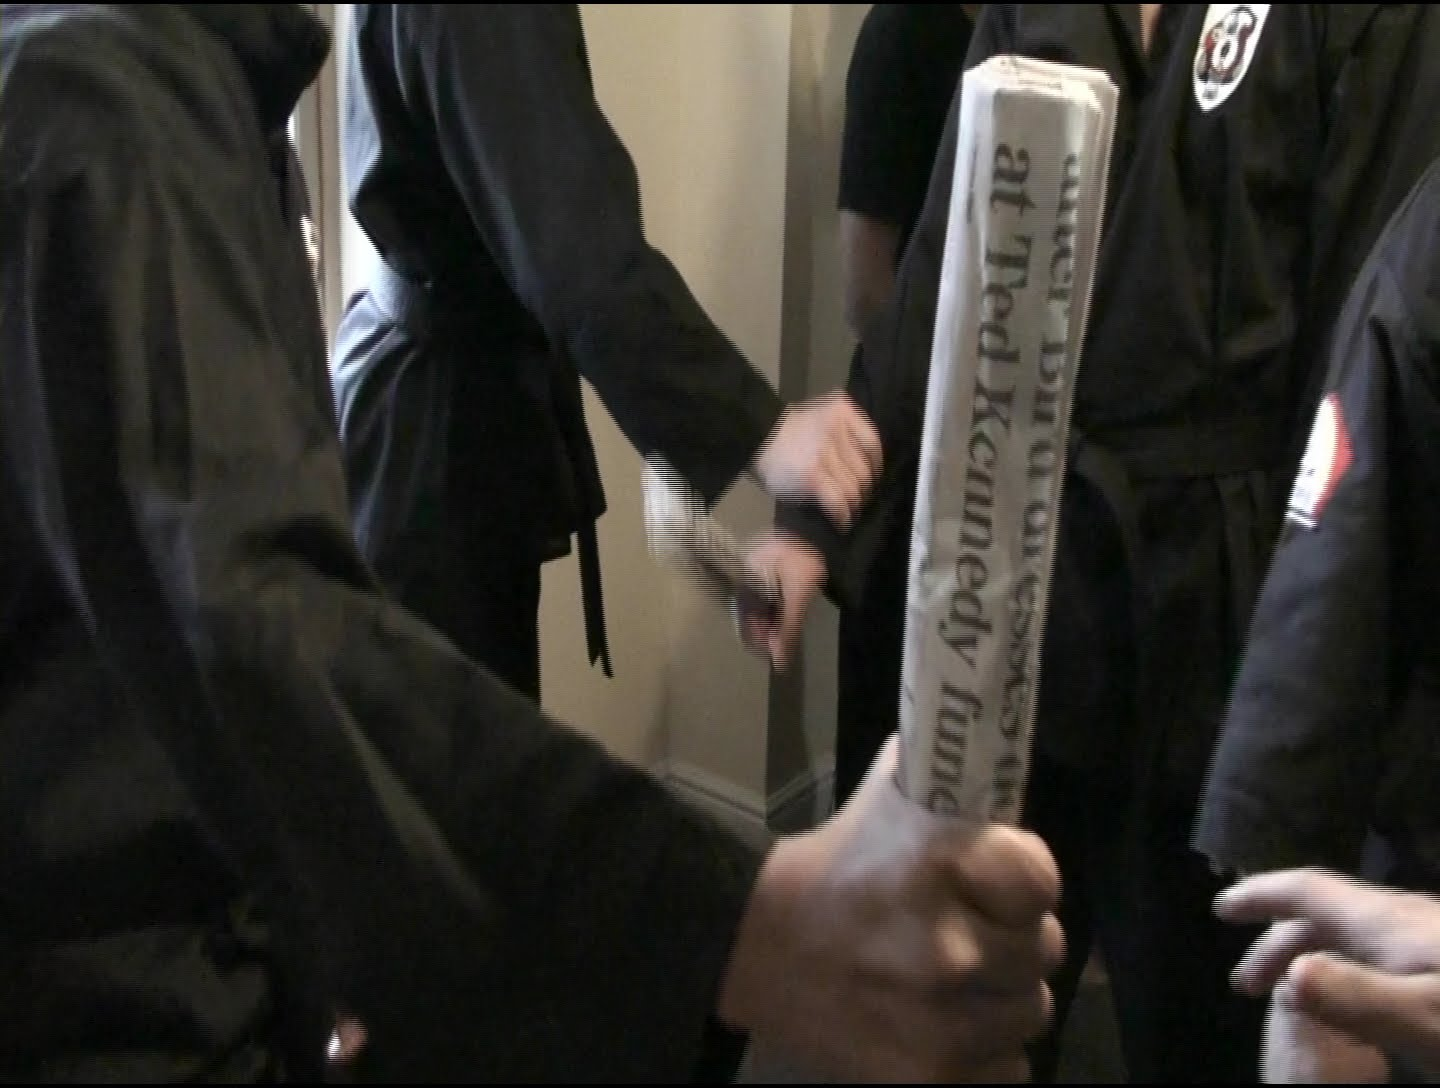 How to Use a Newspaper as a Weapon | Self-Defense - YouTube